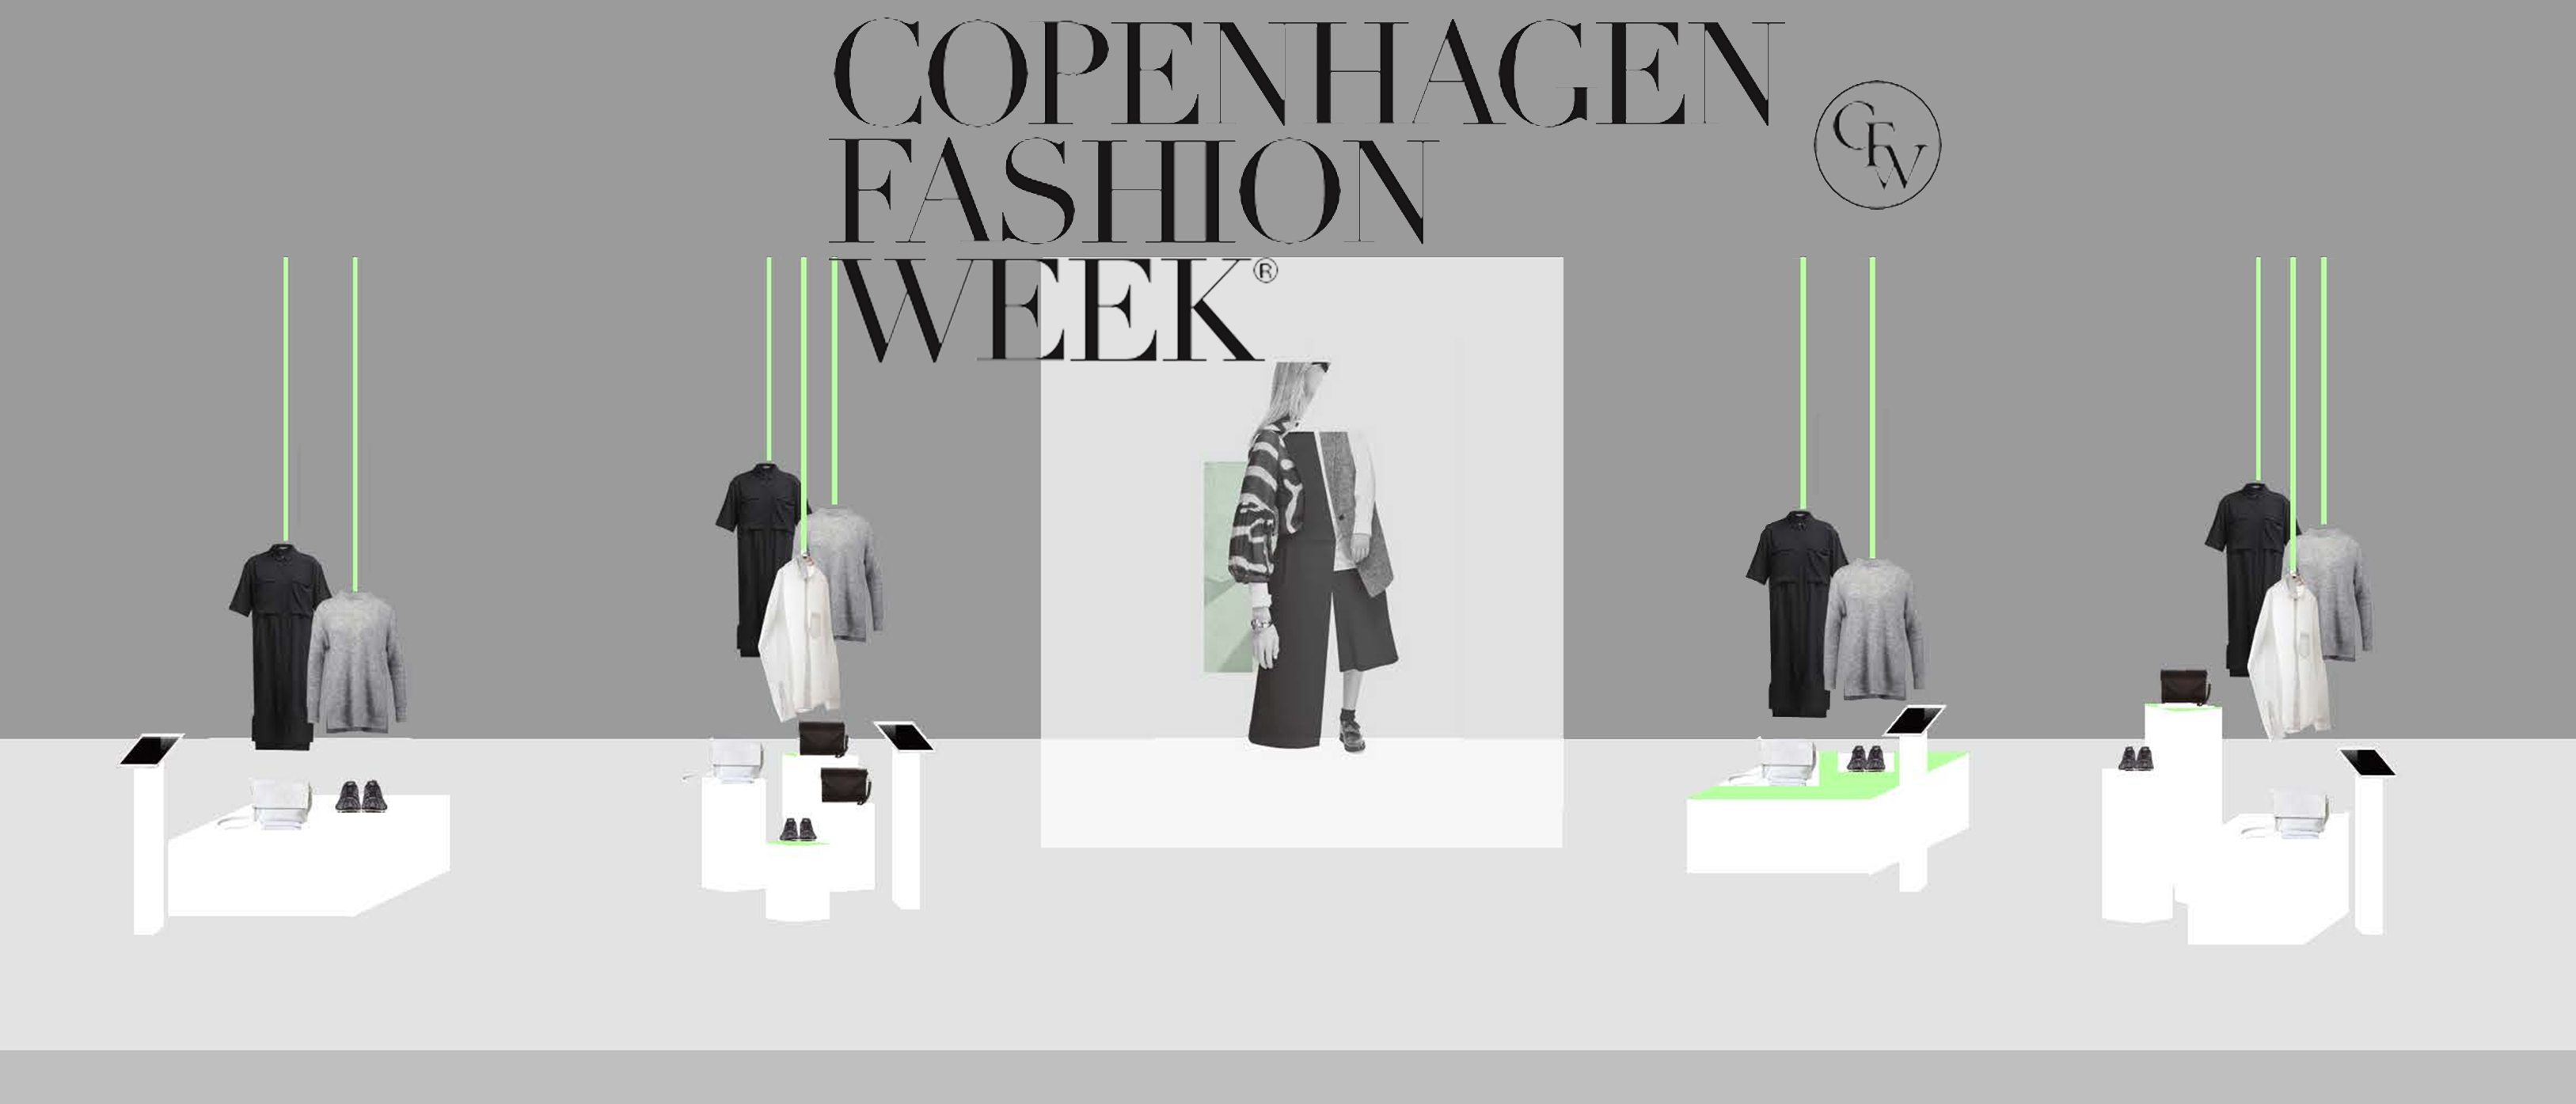 Copenhagen Fashion Week 2016